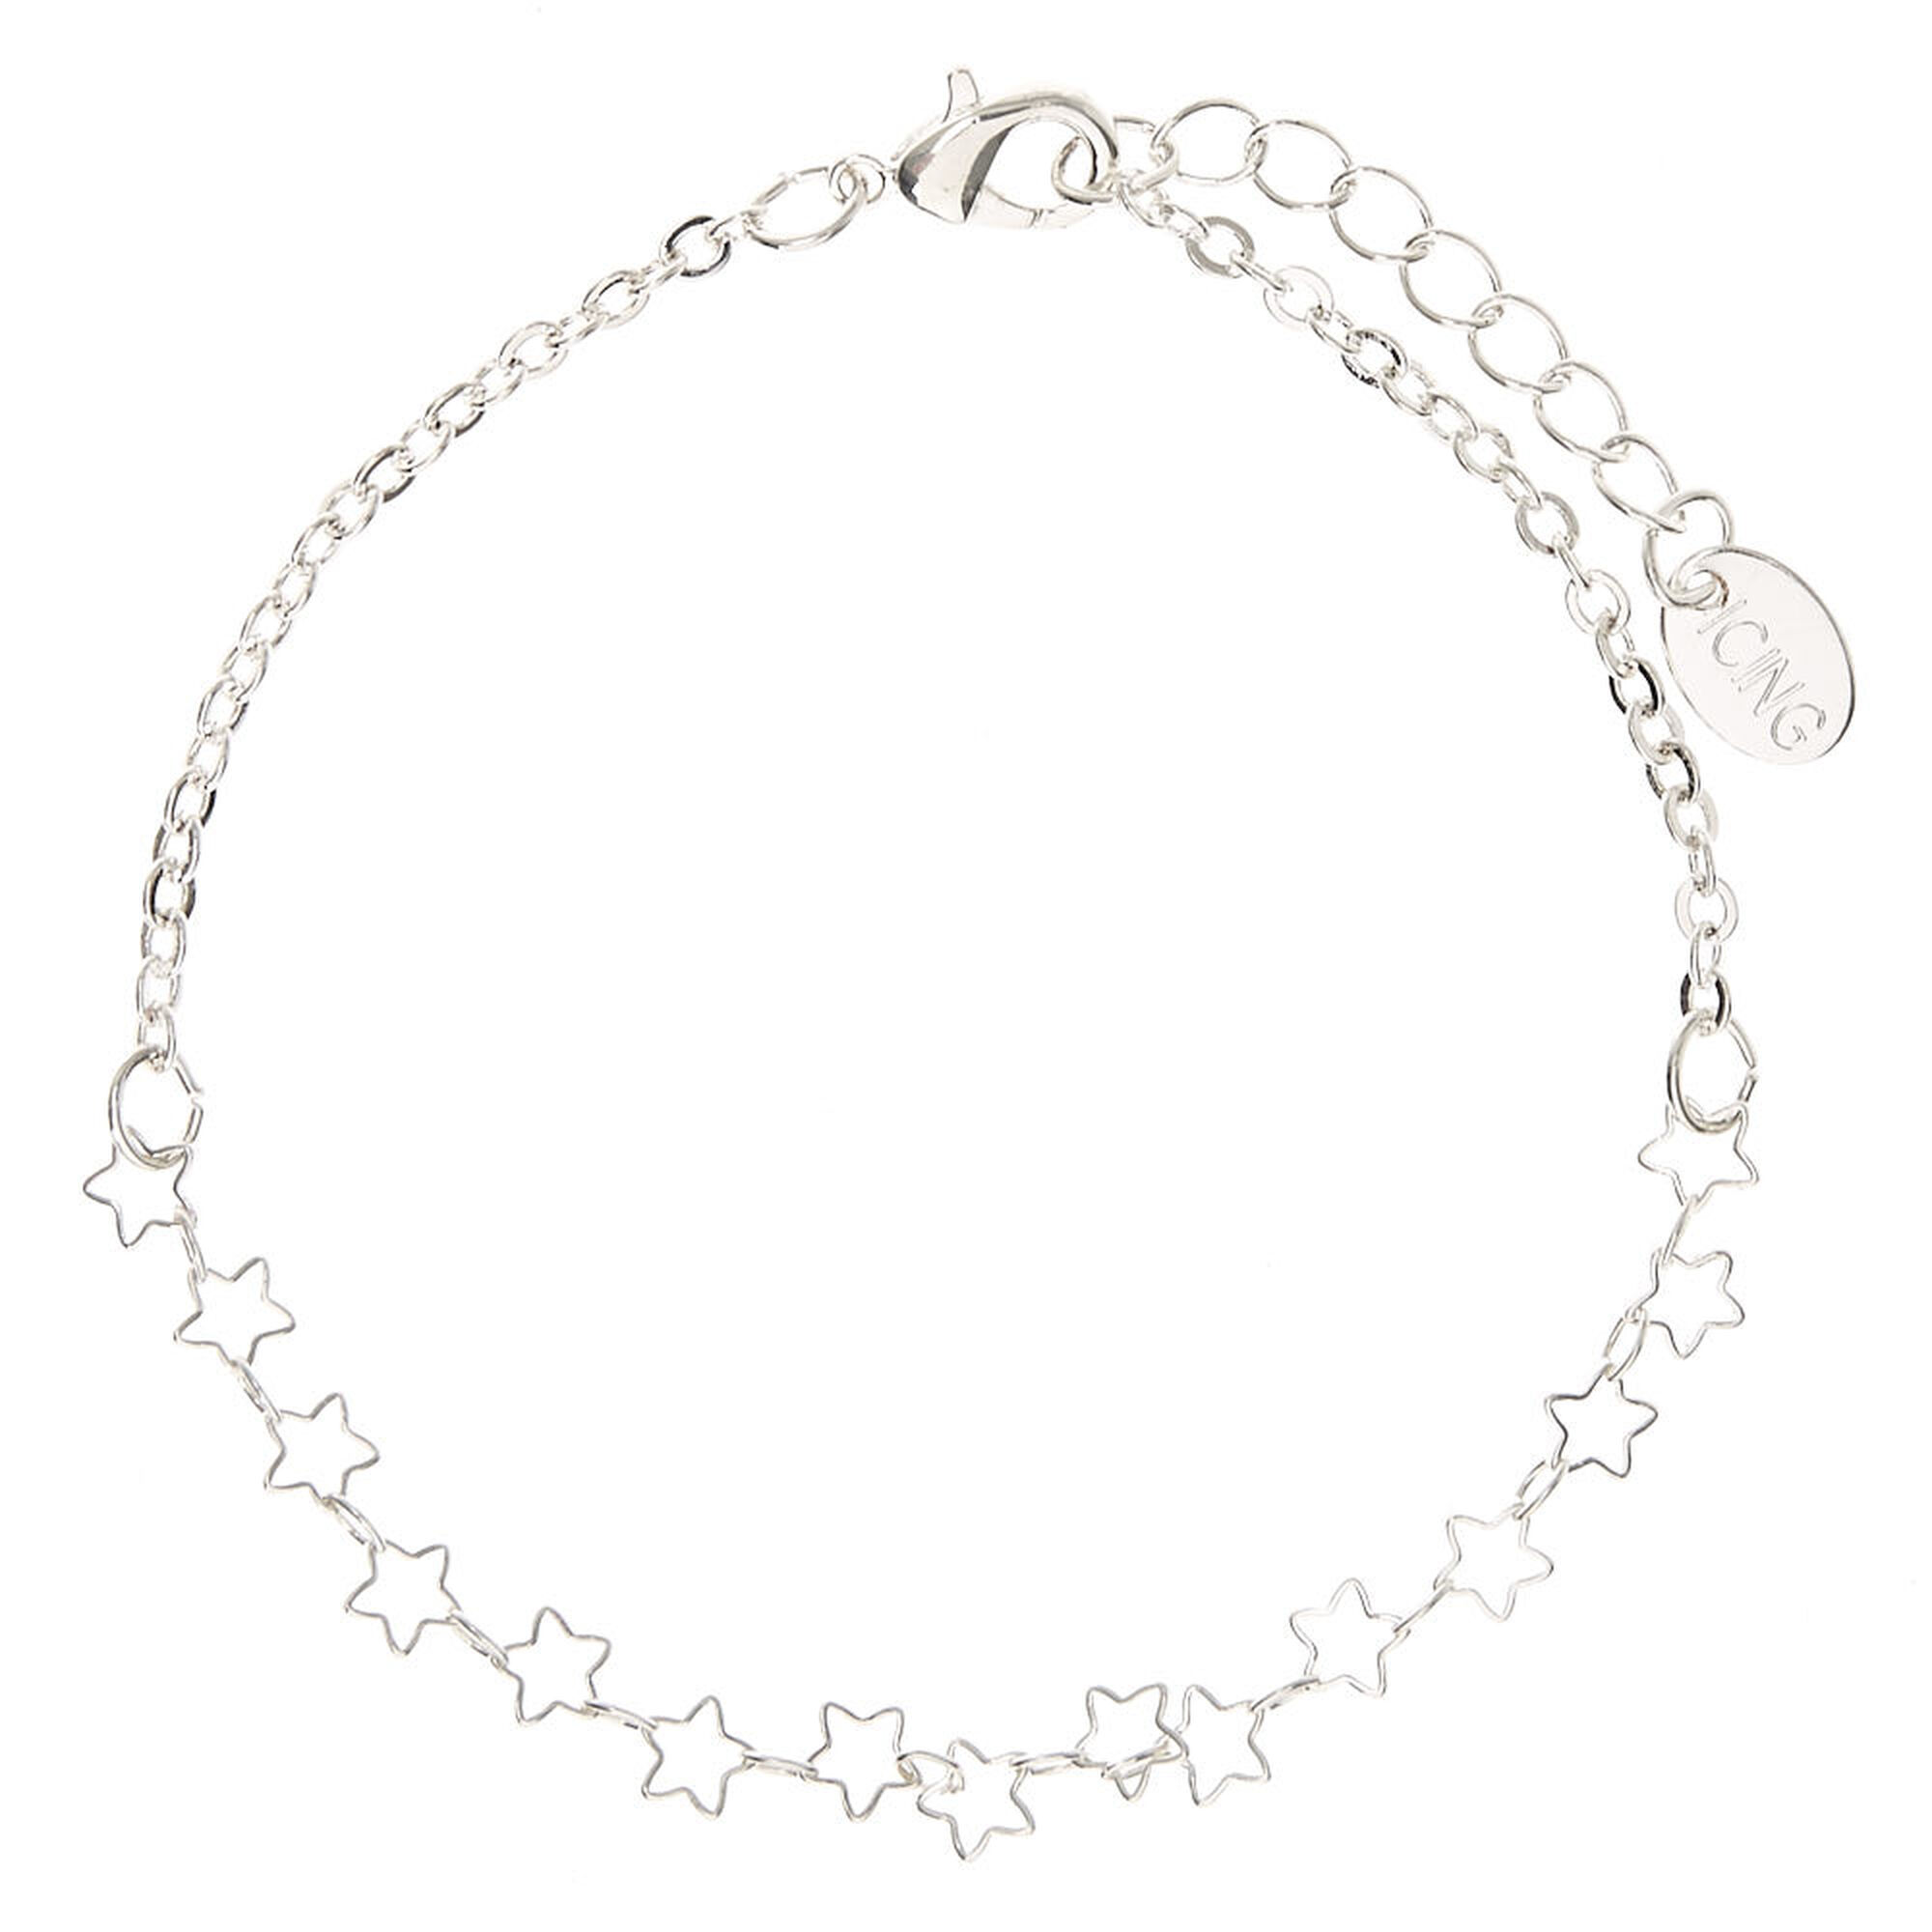 accessories buy women anklet jewelry ladies in fashion oxidised for kl to rathi bahana product girls n anklets online where silvertone indie urban malaysia